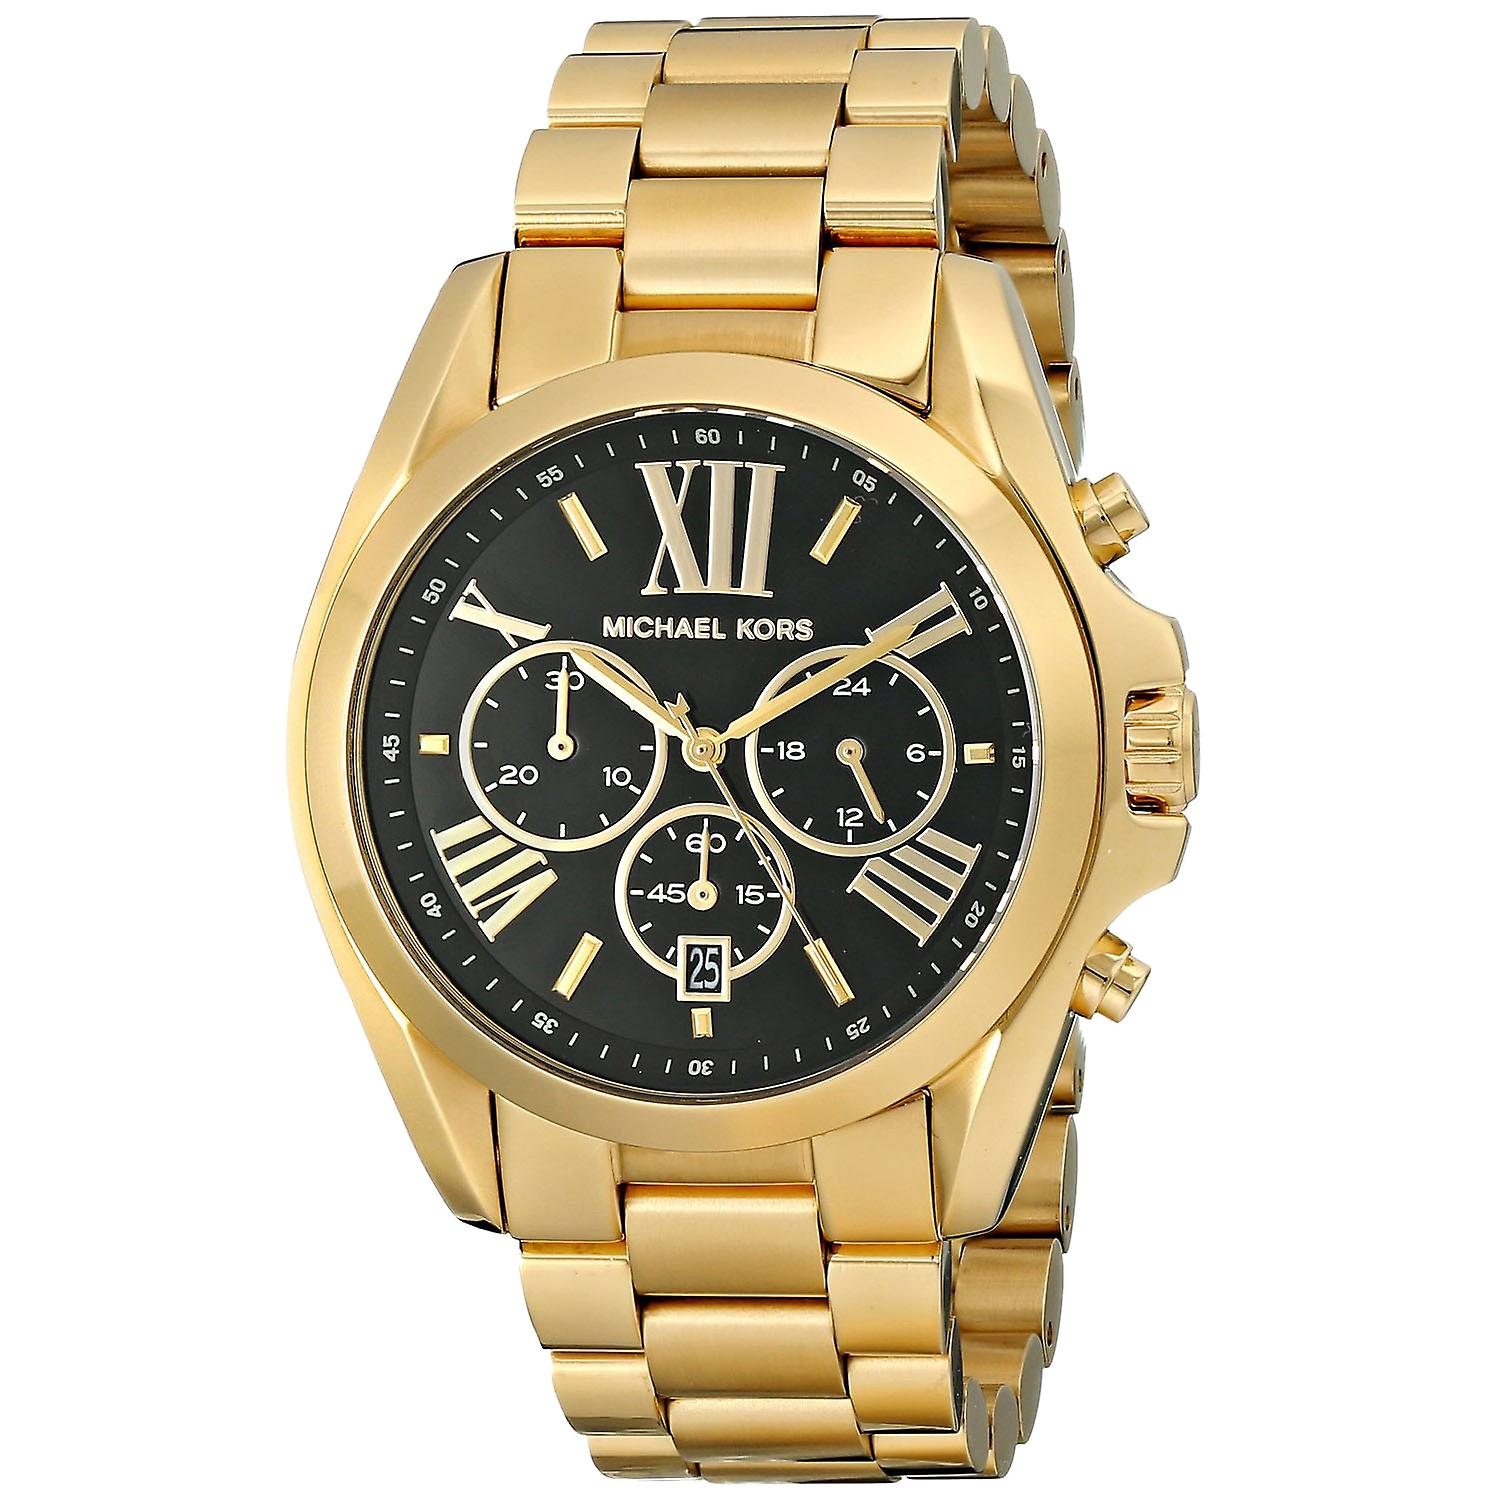 Michael Kors MK5739 Rose Bradshaw Gold Plated Chronograph Wrist Watch